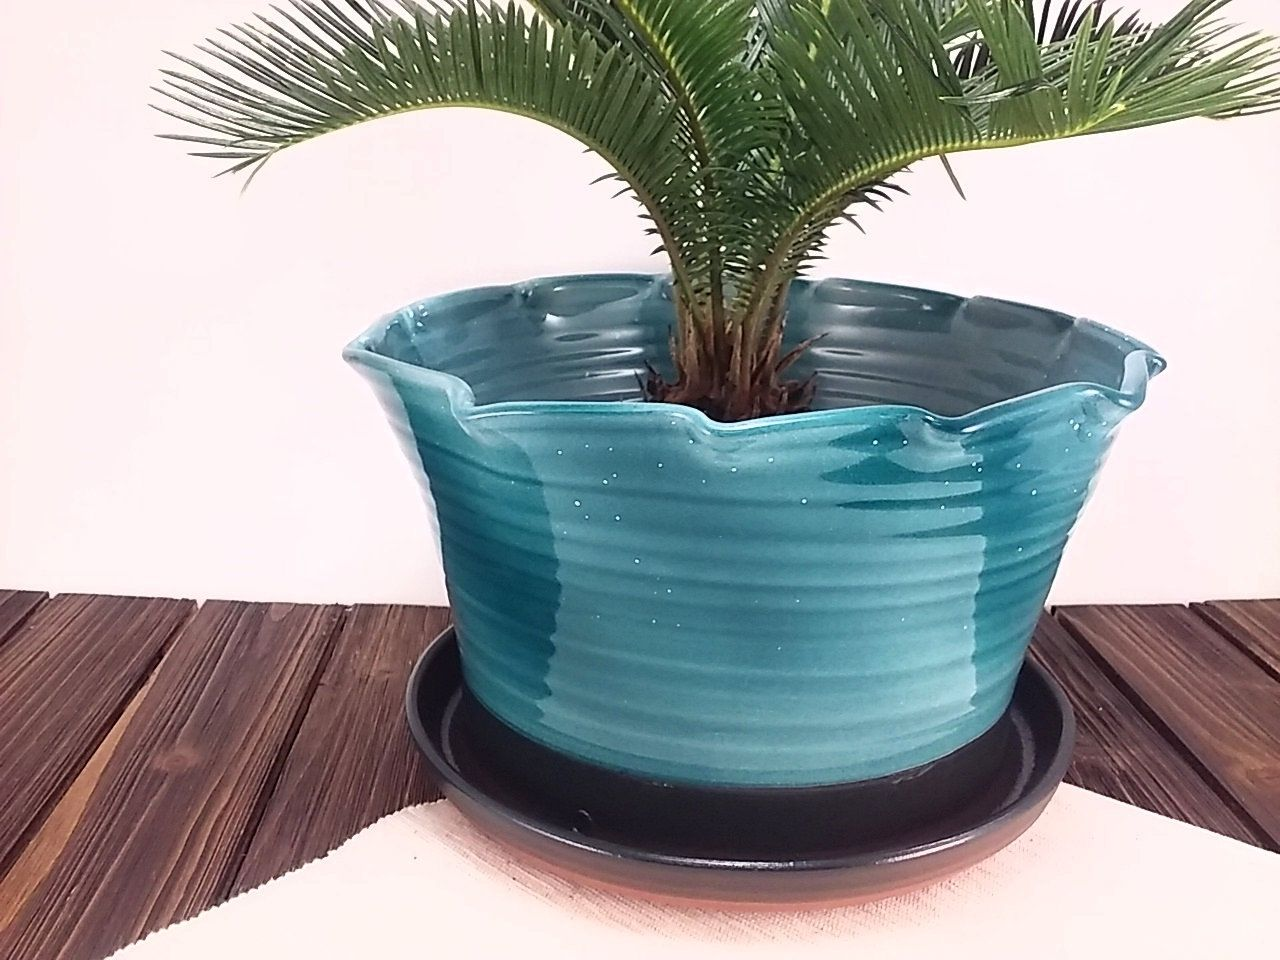 beautiful planter apieceofrainbow diy lasting secret free a make light design wood rainbow of plans ideas long these portable weight boxes easy piece the pots large makes that and